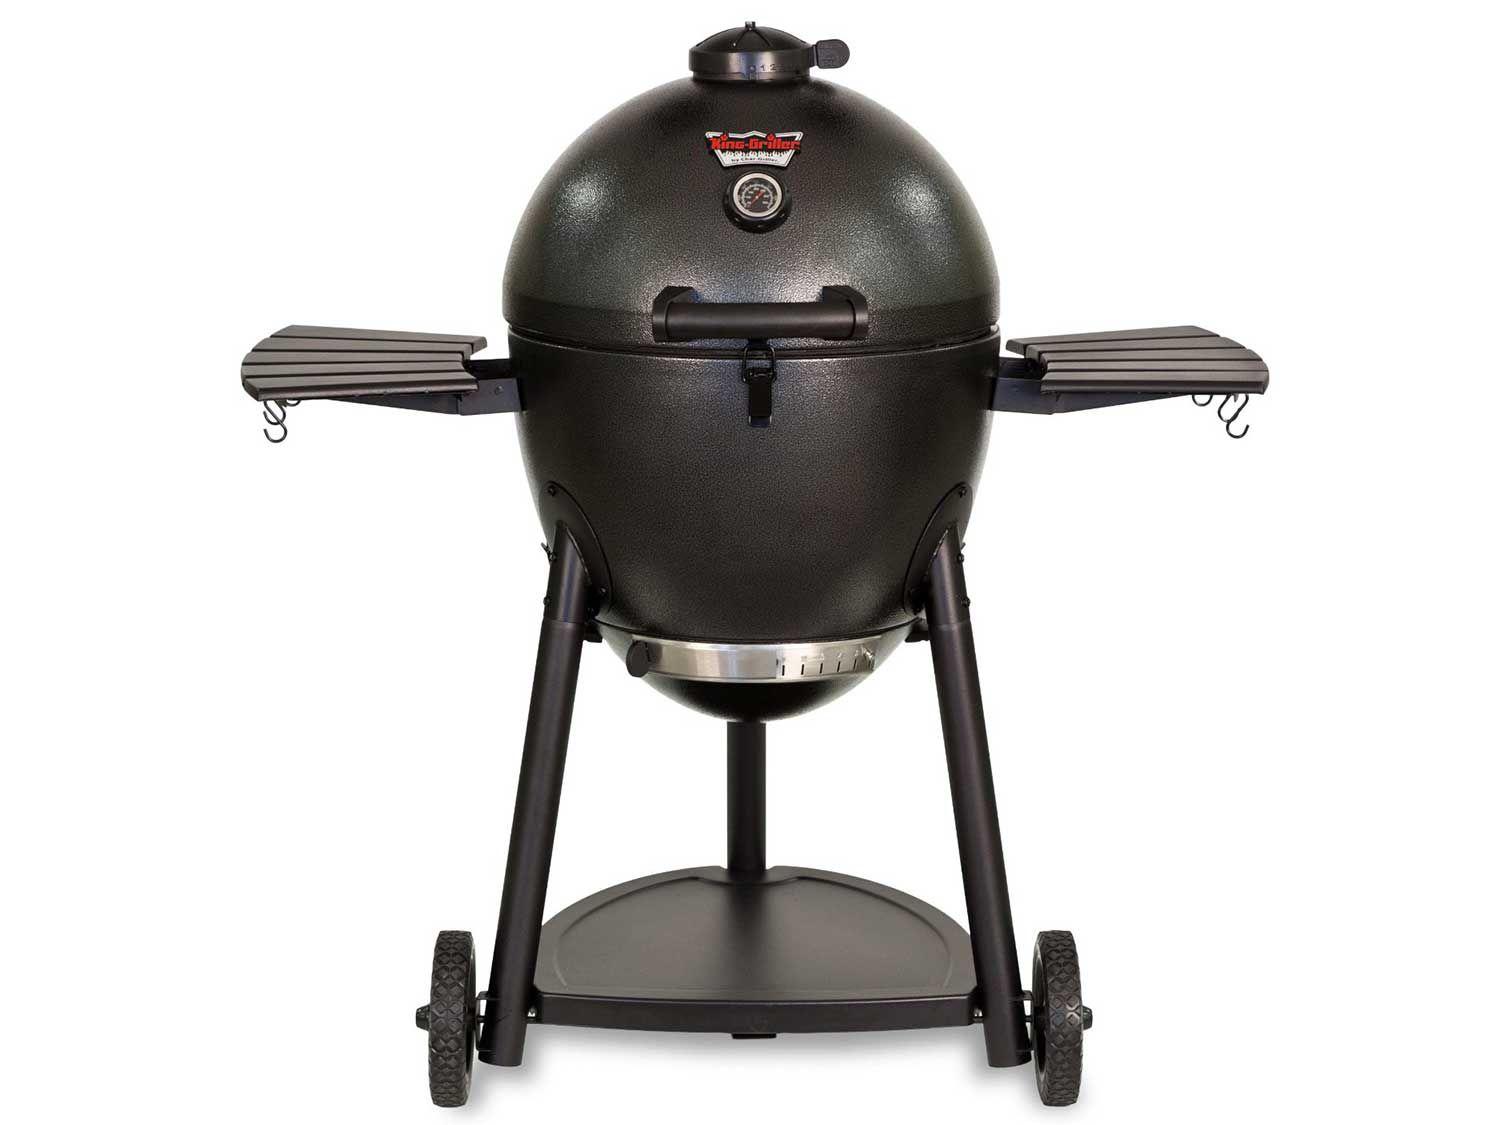 The Char-Griller Akorn Kamado Grill, a small, low-priced kamado-style cooker